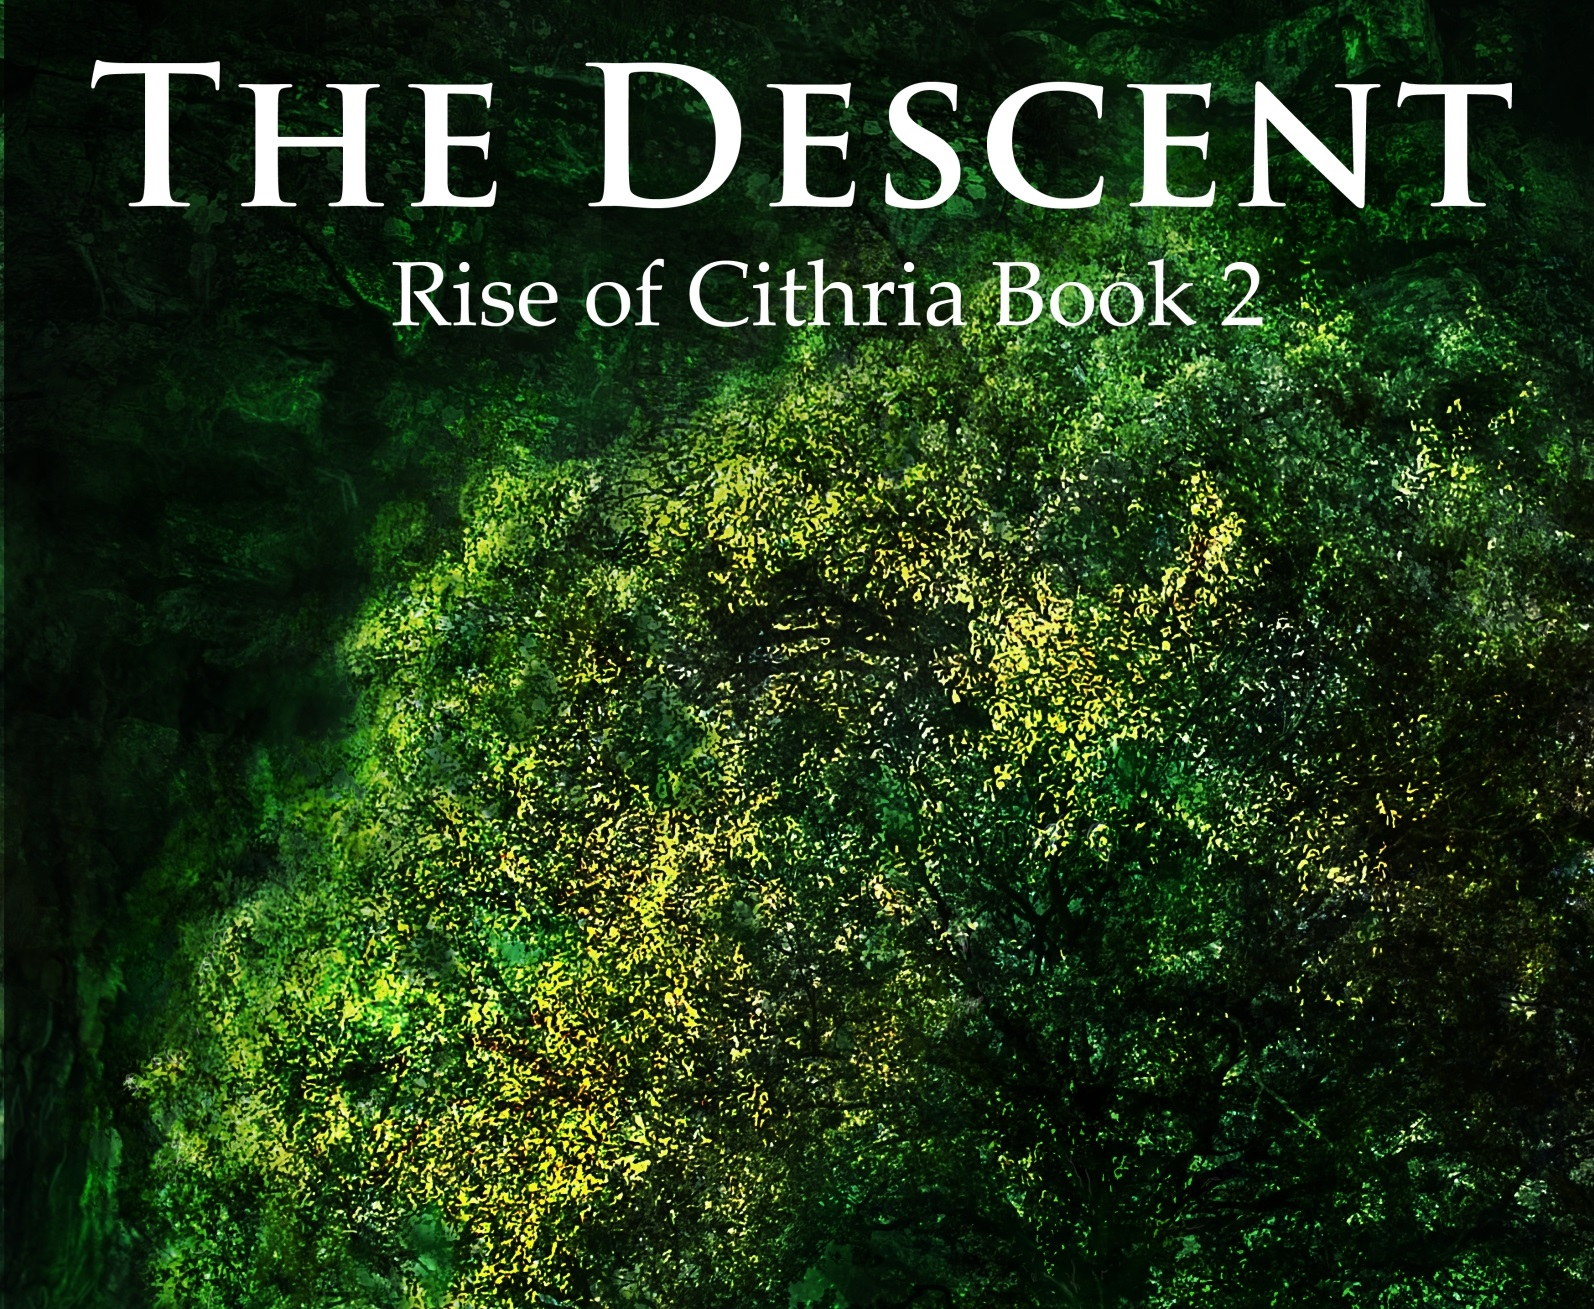 The Descent (Rise of Cithria #2)